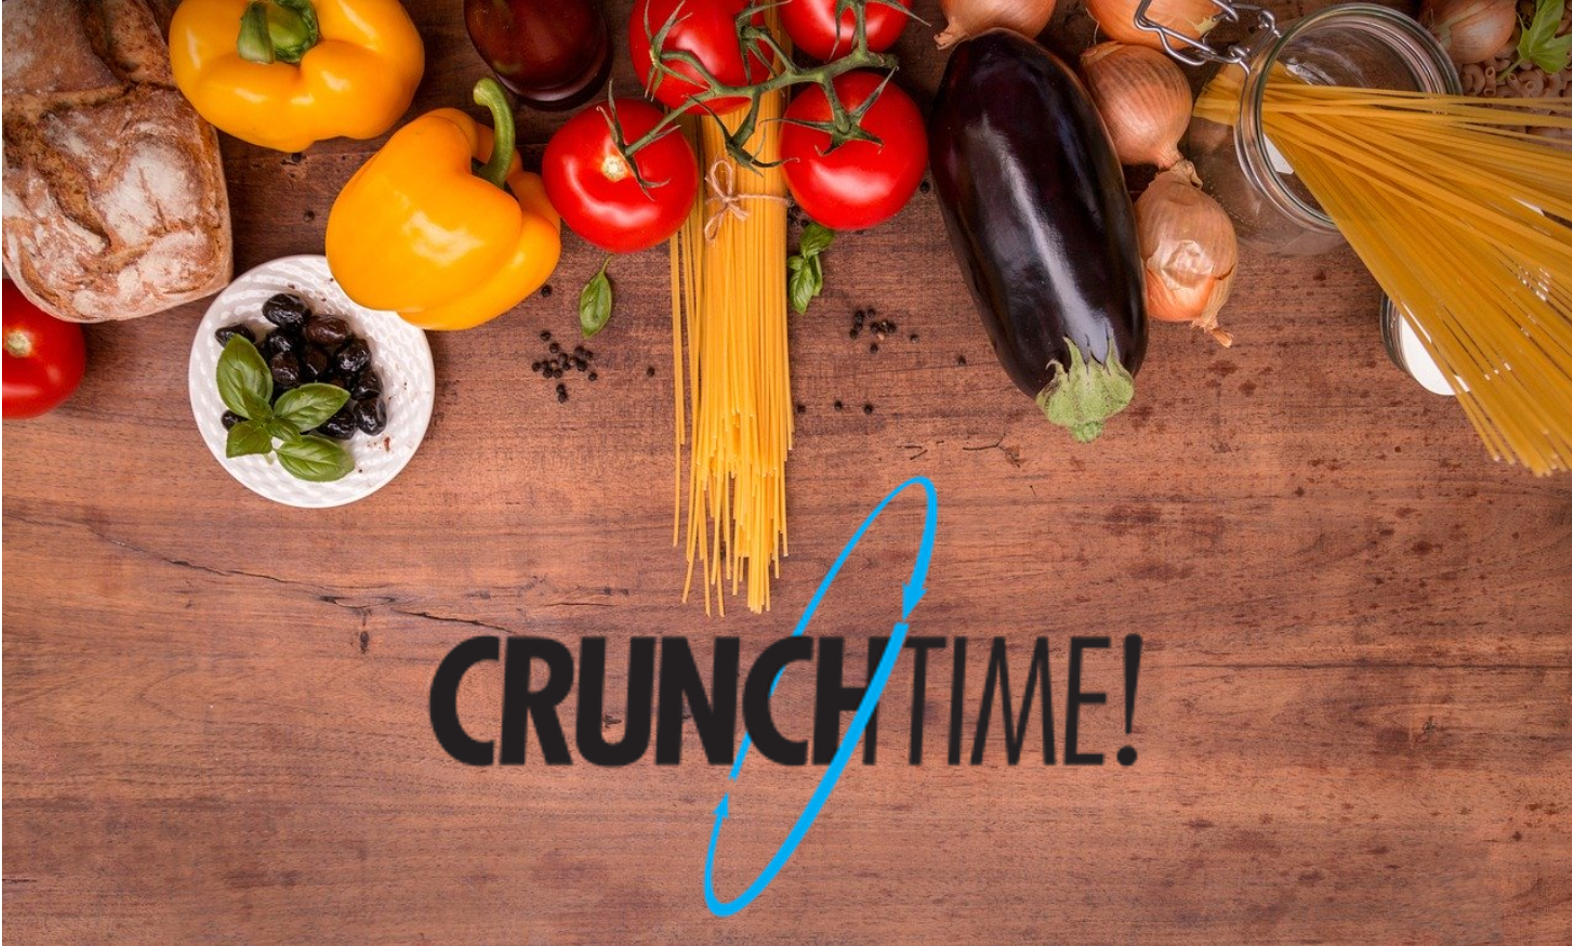 image for the asset titled: CrunchTime: Restaurant Management Application